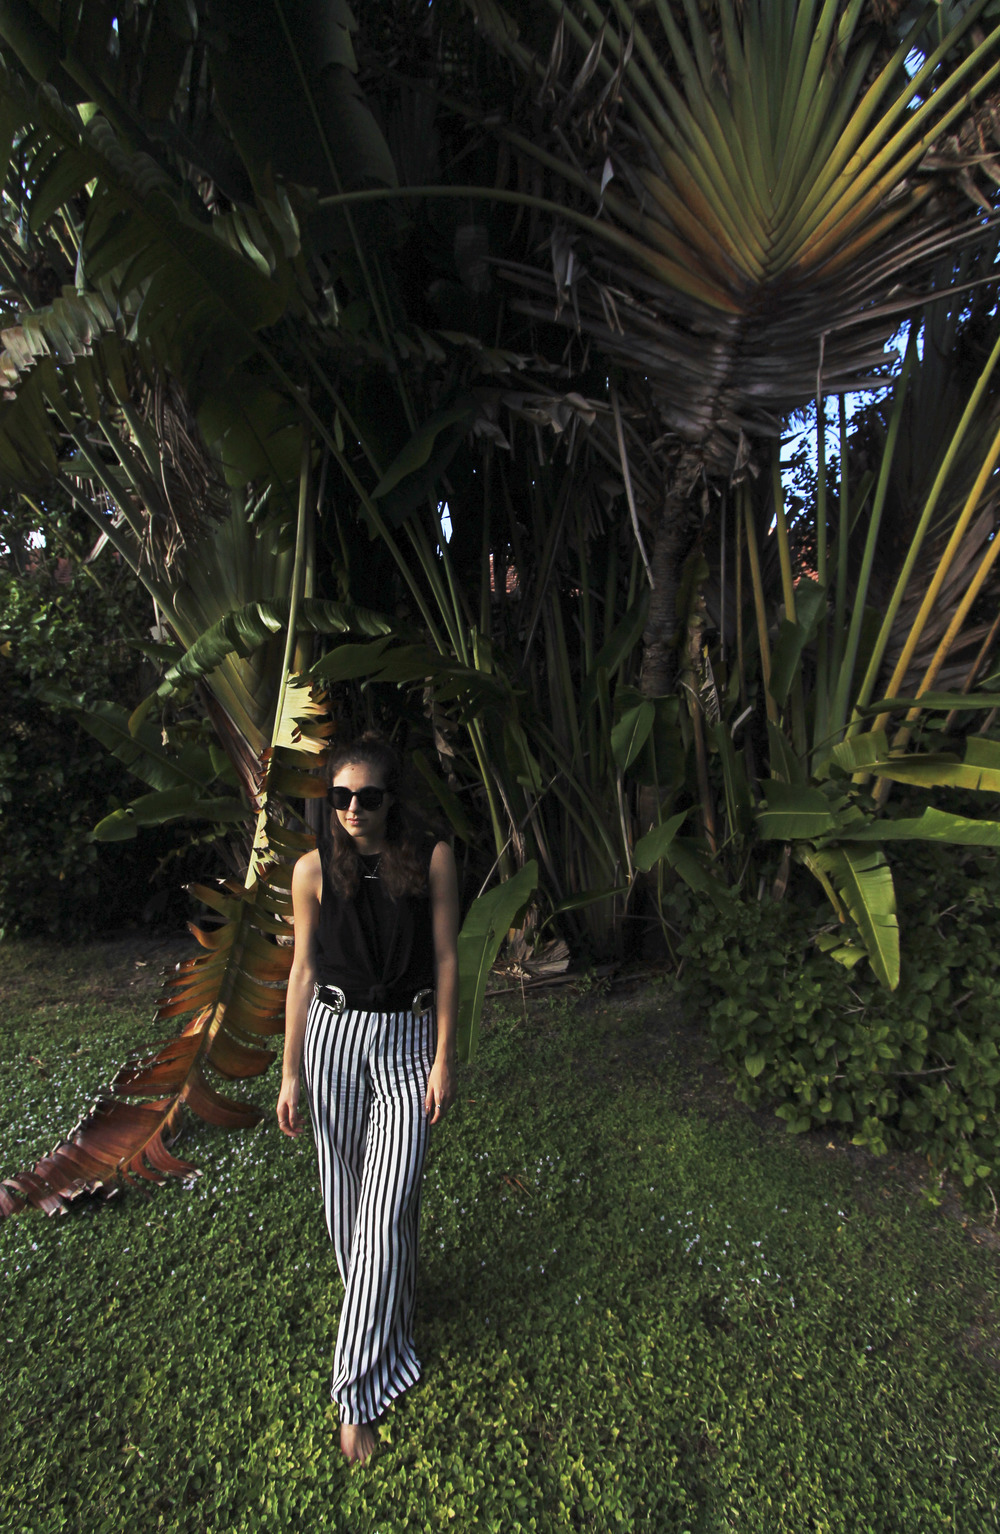 miami palm trees style outfit black and white stripes.jpg